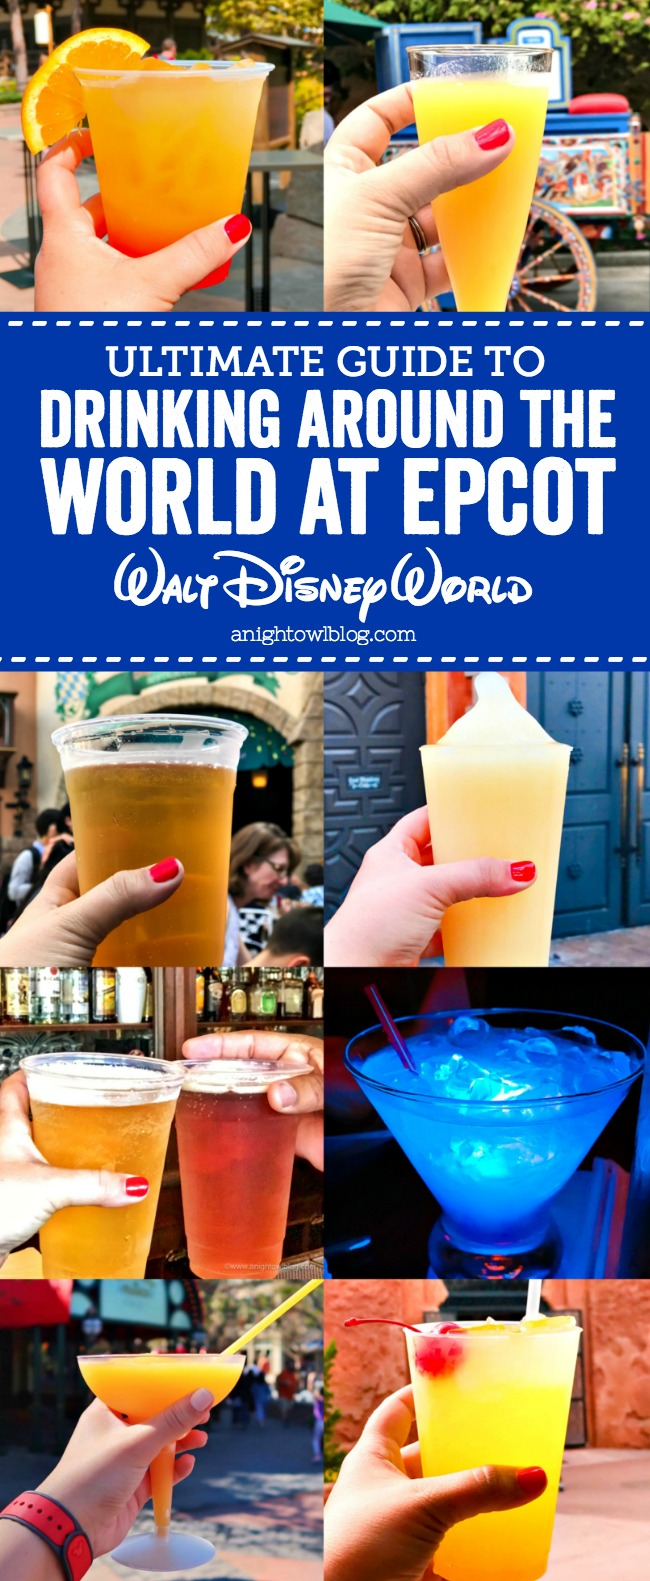 Guide to Drinking Around the World at EPCOT | A Night Owl Blog